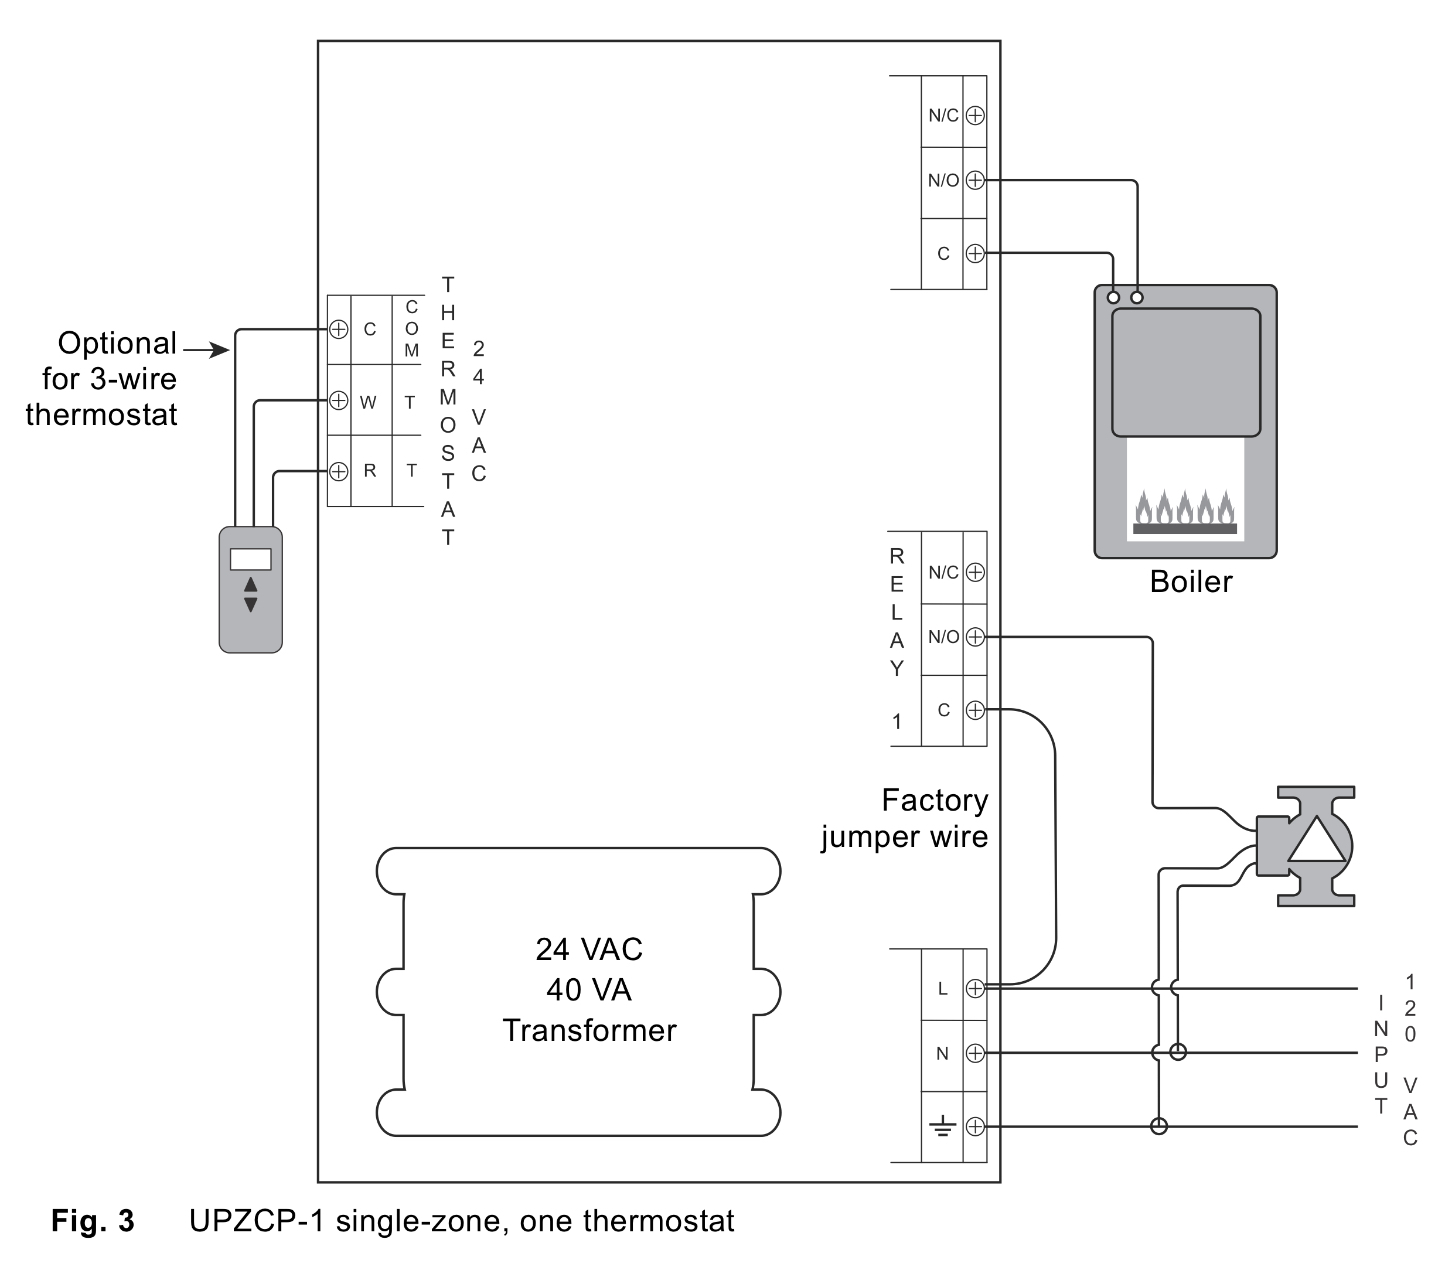 hight resolution of also included here is the wiring schematic for the relay i m particularly concerned about having two transformers in the same system